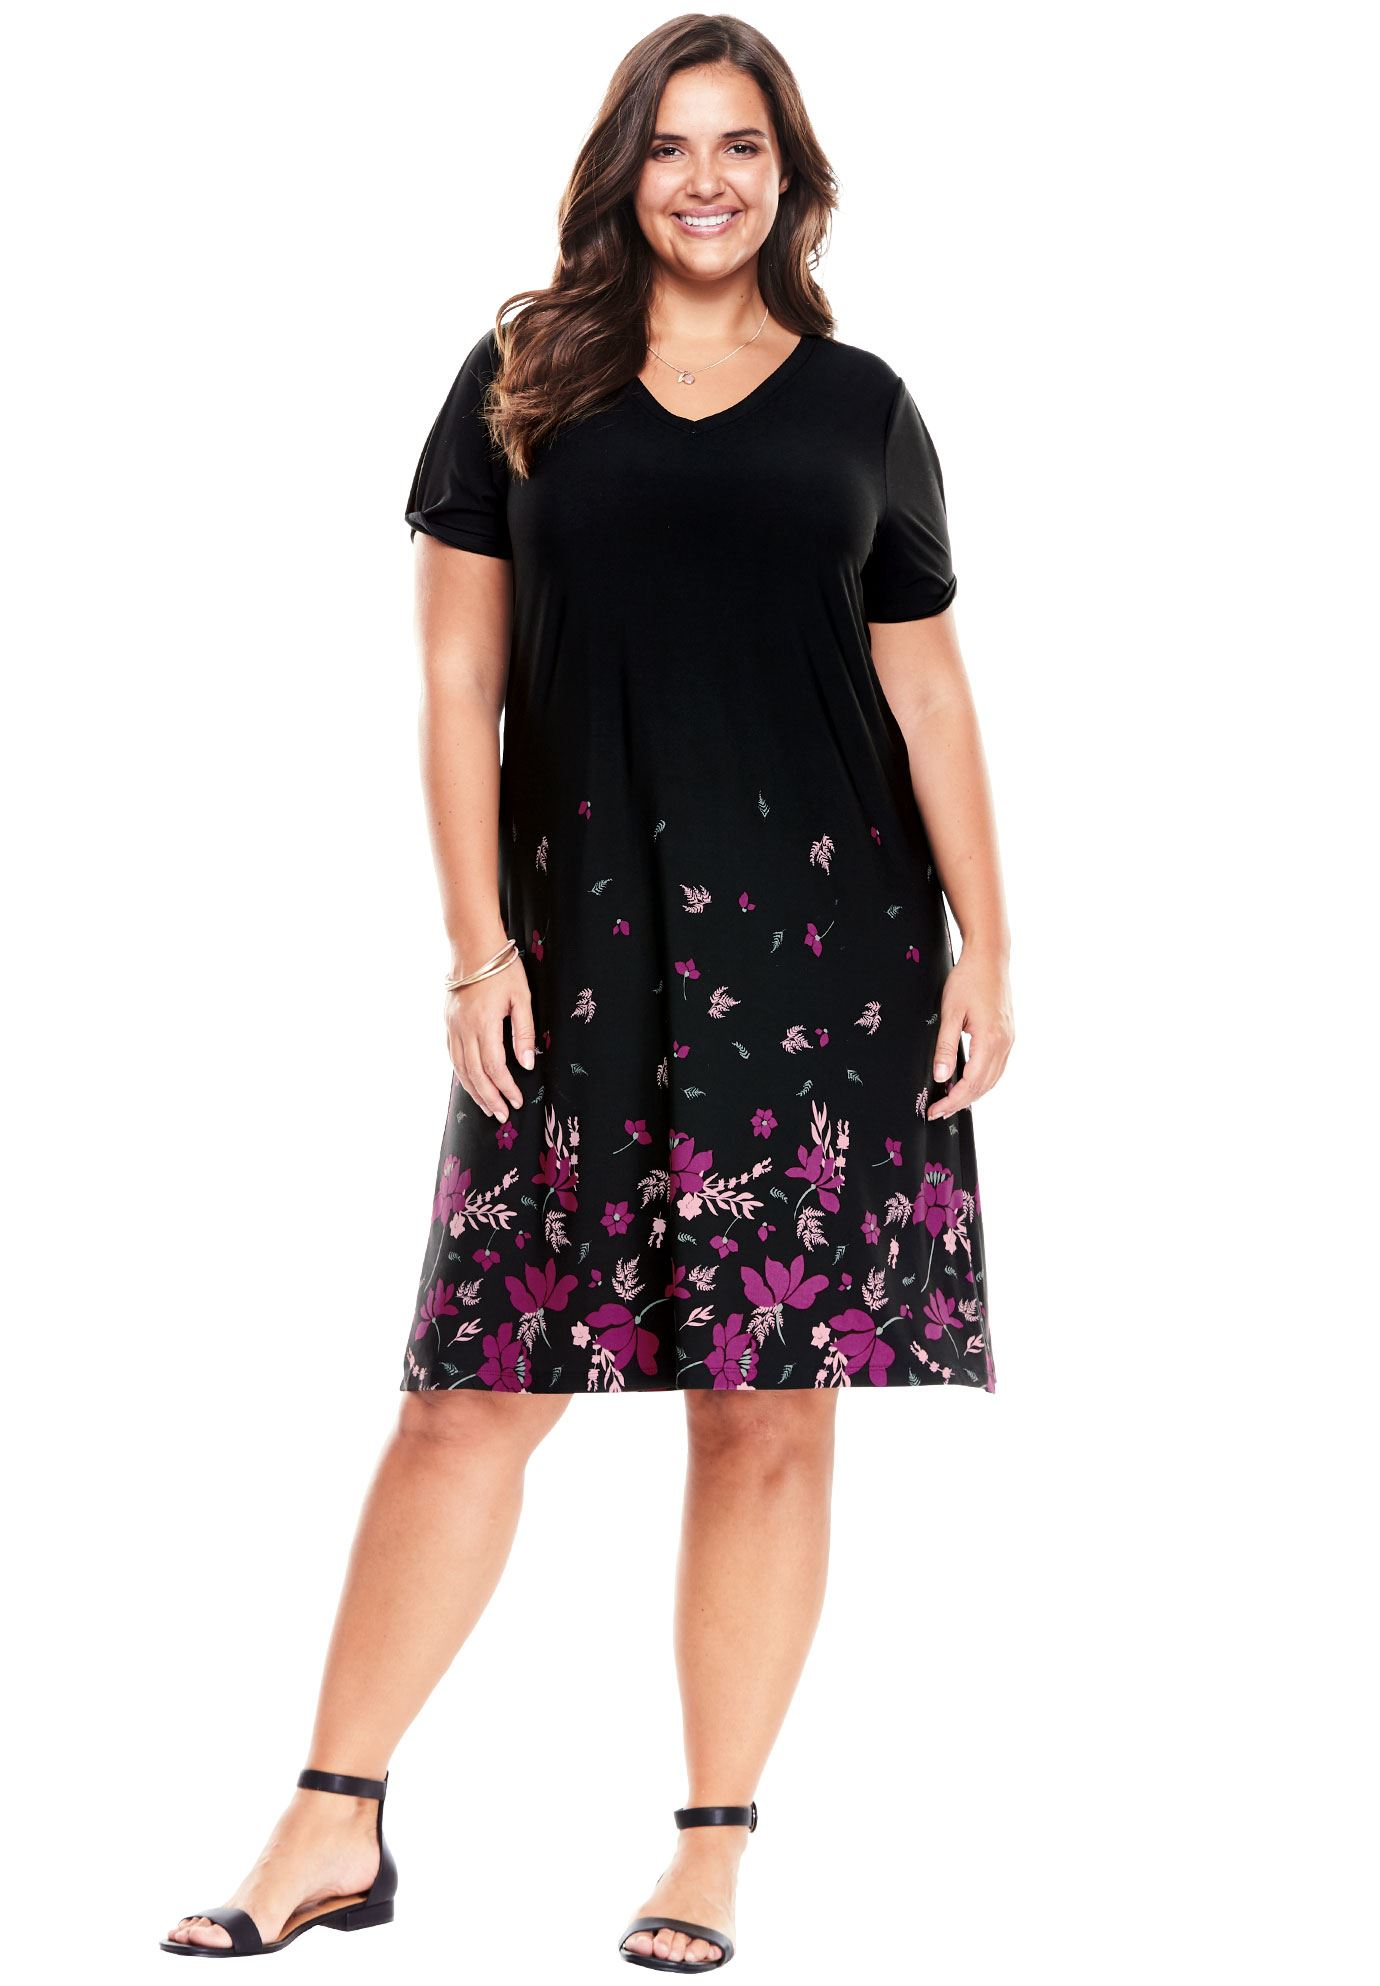 Twist sleeve dress womenus plus size clothing products